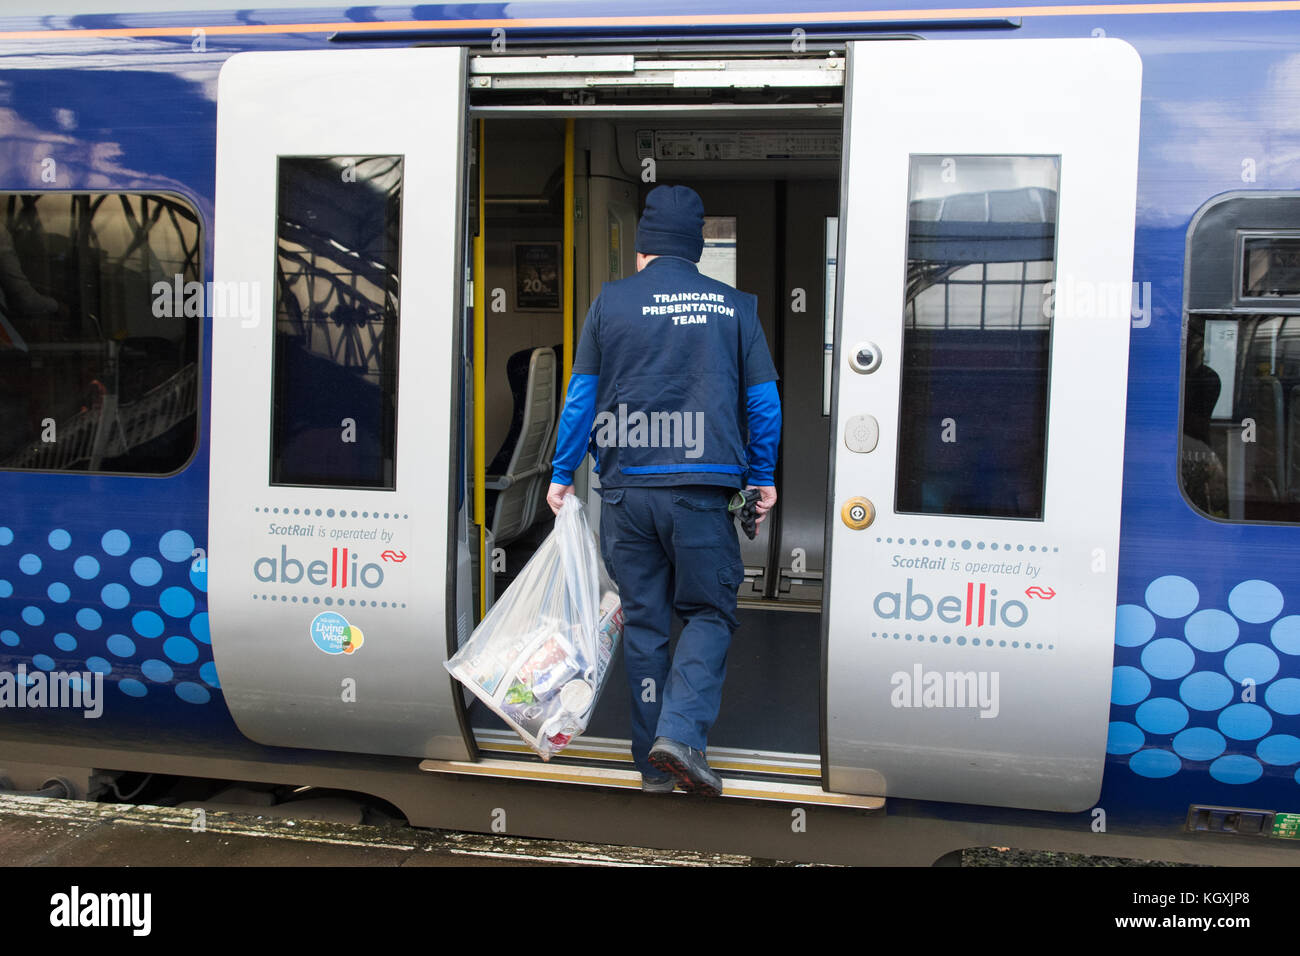 ScotRail train cleaner - traincare presentation team - entering train to clean it as it terminates at Ayr train - Stock Image